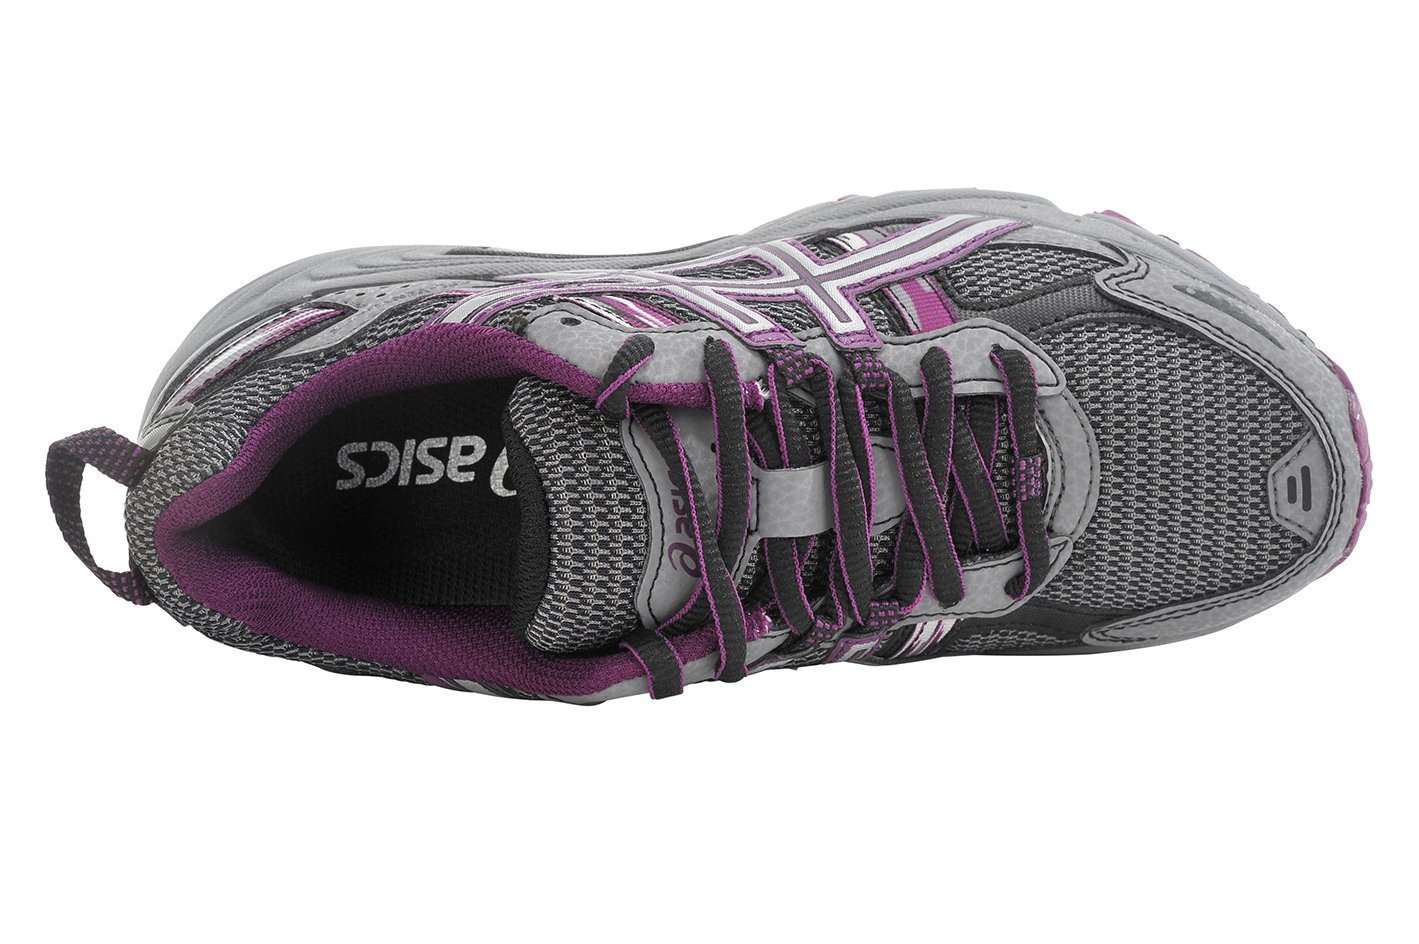 ASICS Women's Gel-Venture 5 Trail Running Shoe, Frost Gray/Gray/Silver/Magenta, 6 M US by ASICS (Image #6)